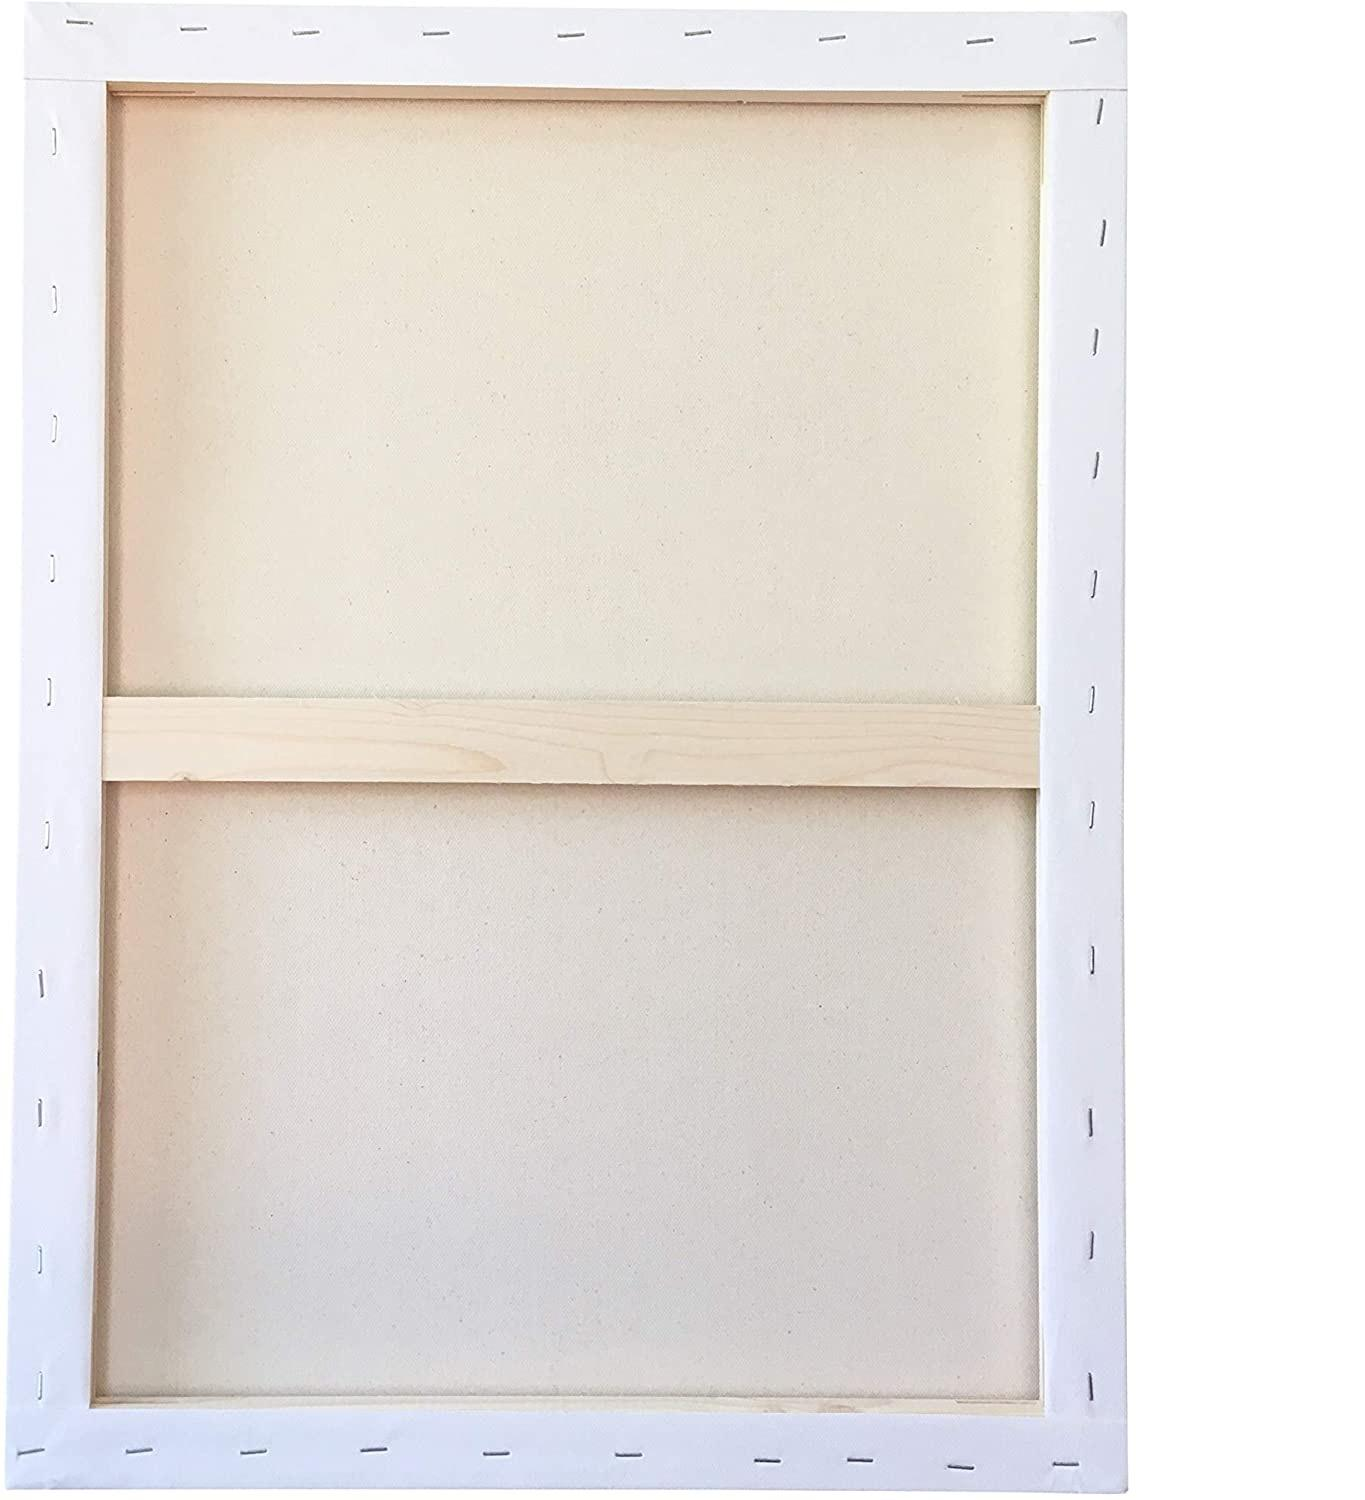 wholesale large blank cotton srtetched canvas art sets for painting